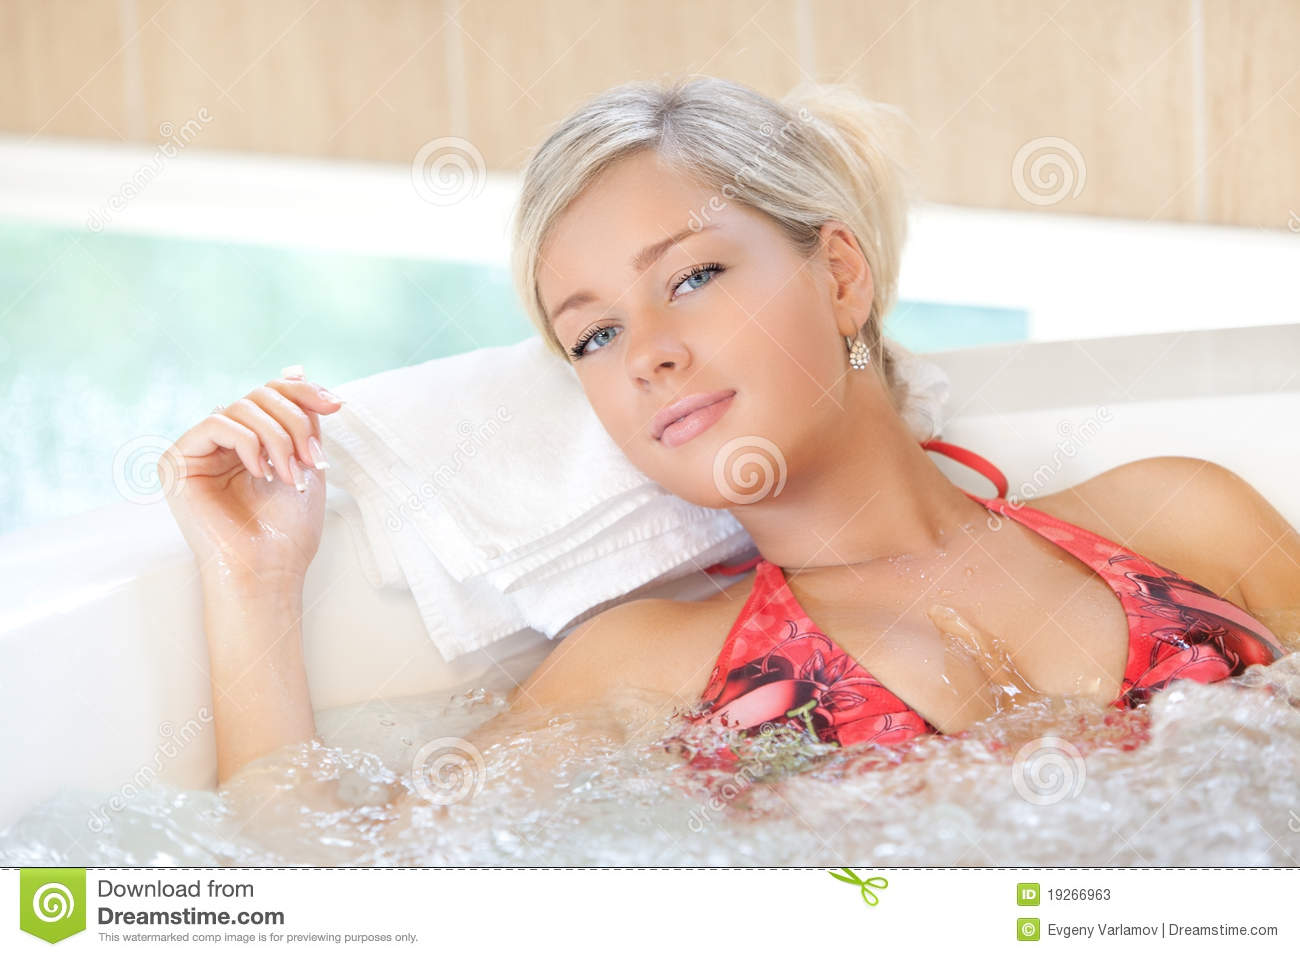 girl in jacuzzi